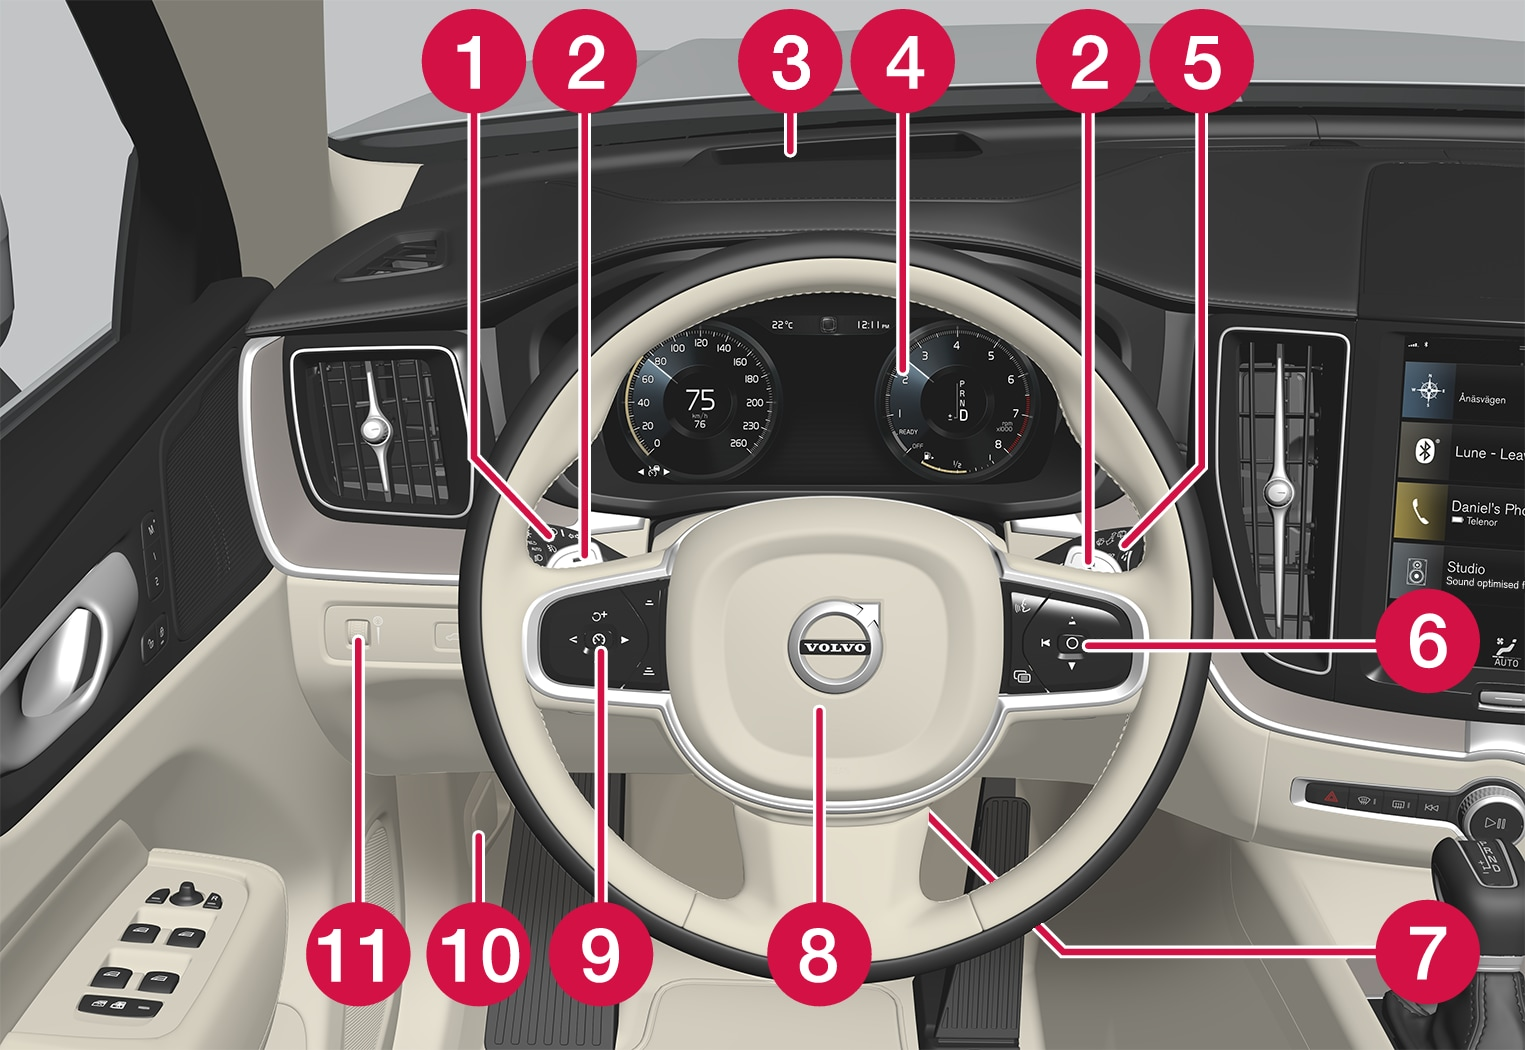 P5-XC60-1717-Instrument and controls overview, left hand drive